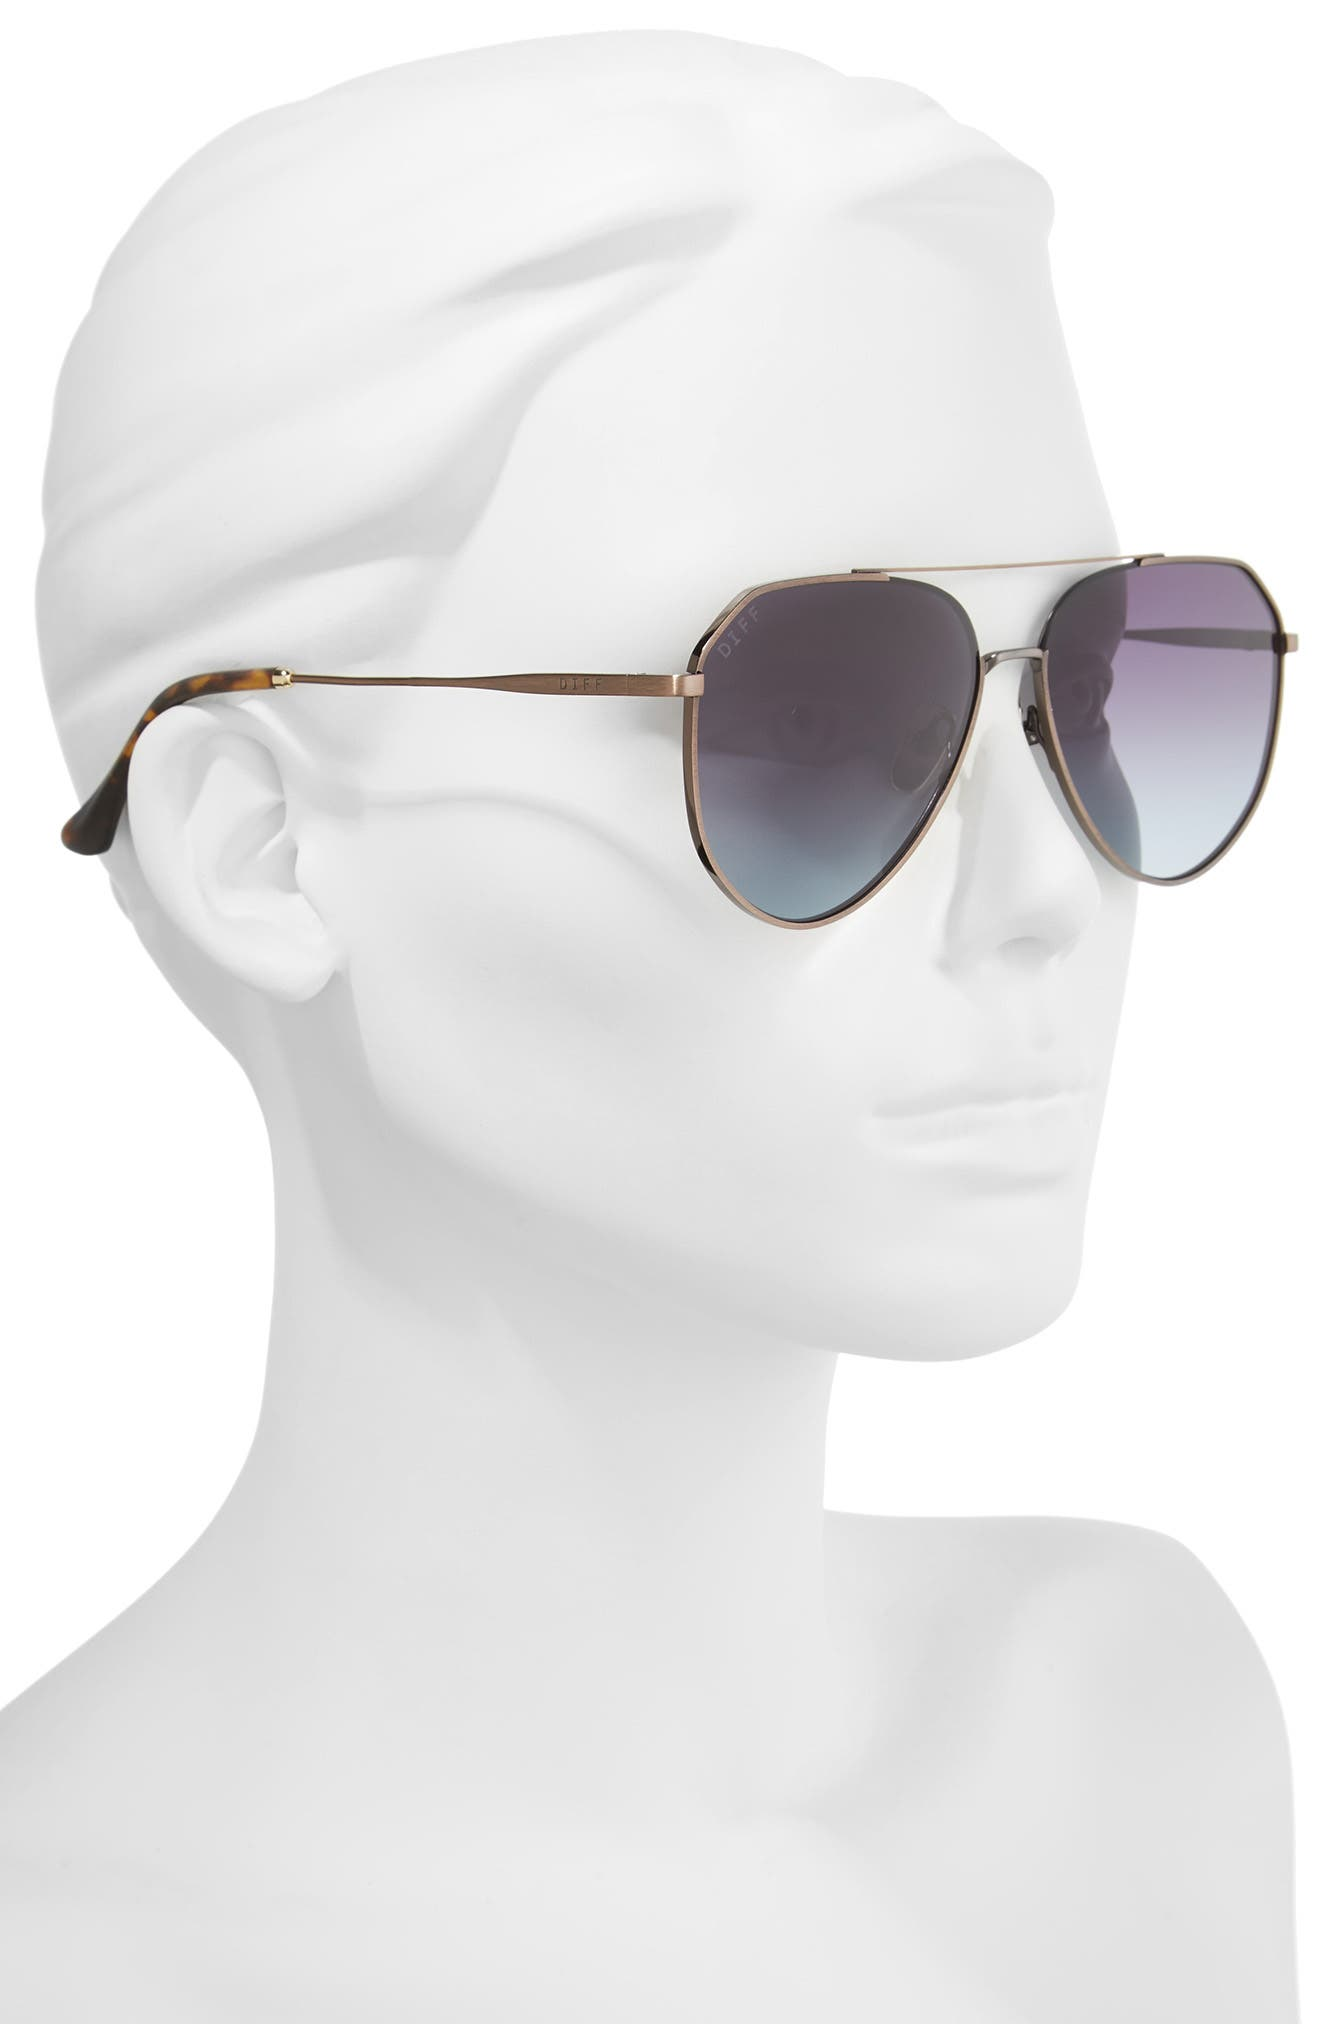 Dash 58mm Aviator Sunglasses,                             Alternate thumbnail 3, color,                             Brown/ Grey Blue